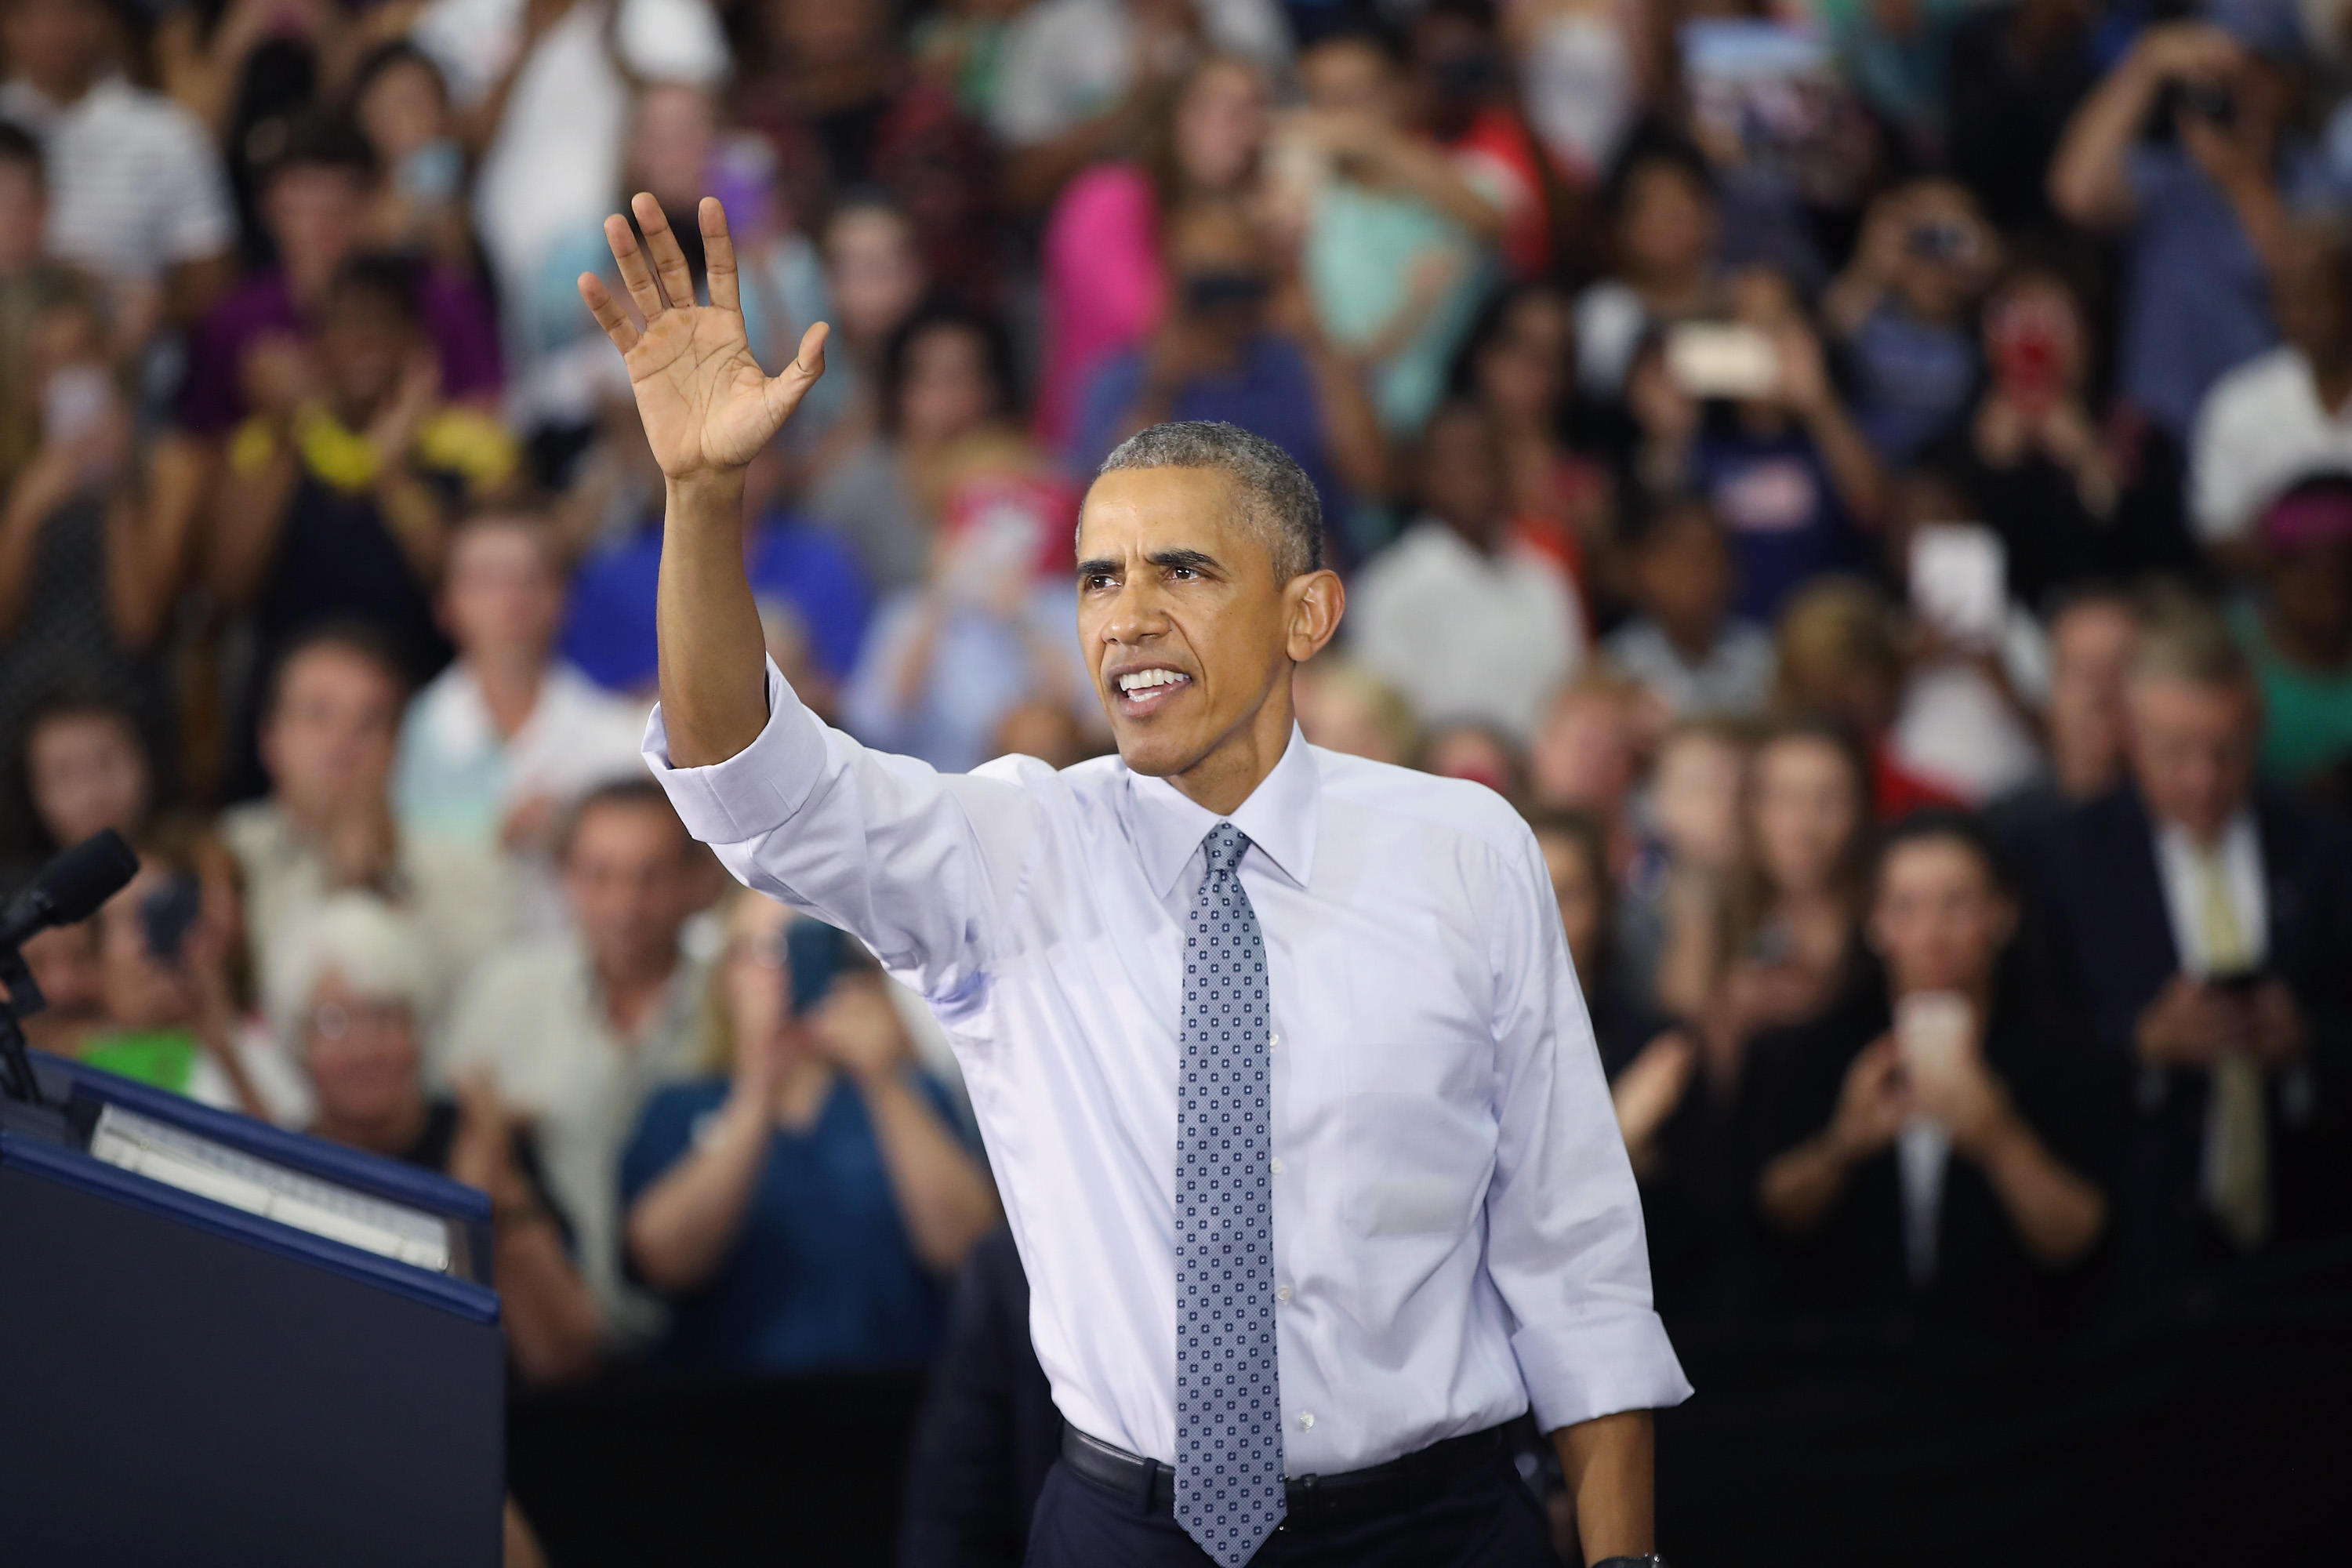 President Barack Obama waves to the crowd at Concord Community High School as he leaves after speaking on June 1, 2016 in Elkhart, Indiana. Obama returned to the school, which he visited more than seven years ago, to highlight economic progress made during his administration. Scott Olson—Getty Images